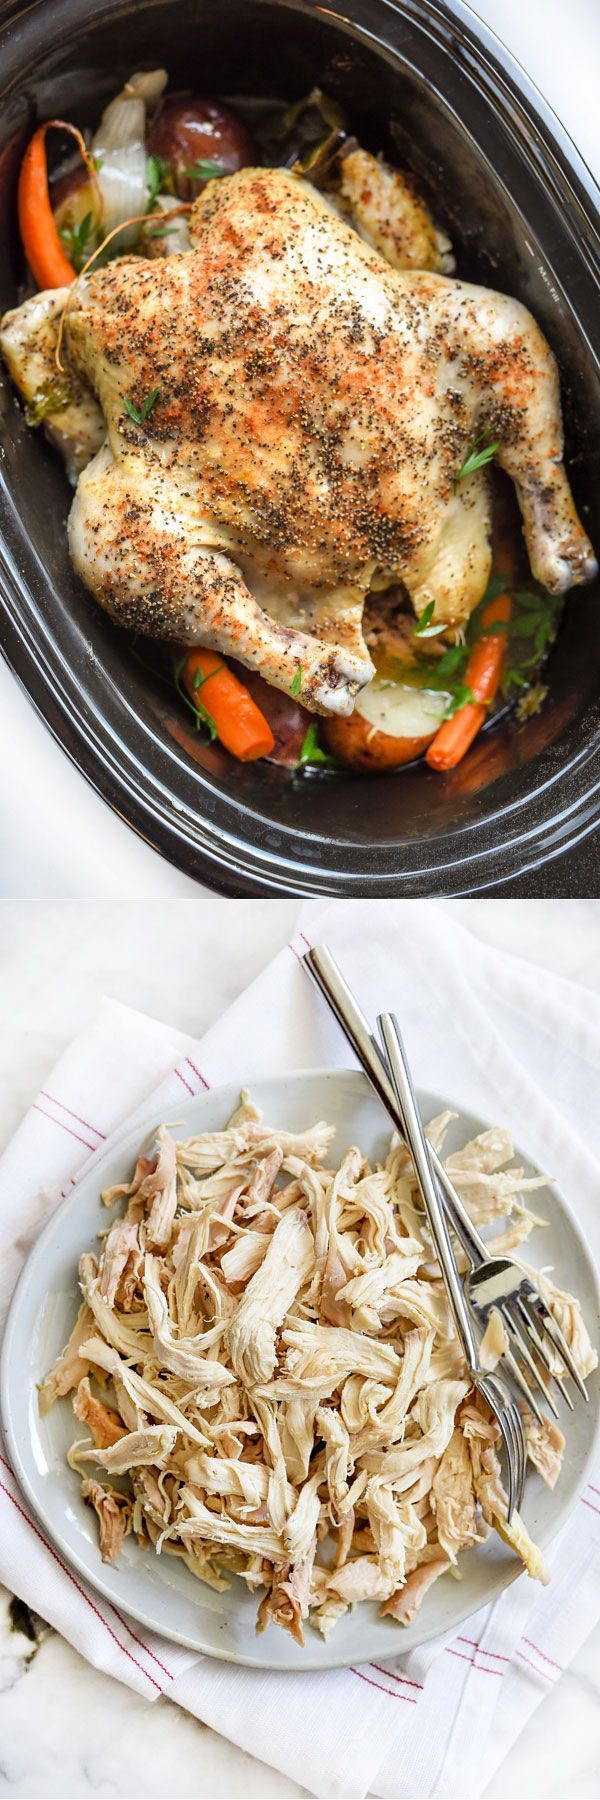 Cooking a whole chicken in the #slowcooker or #crockpot is an incredibly easy way to cook #chicken for a week of lunches or dinners   foodiecrush.com